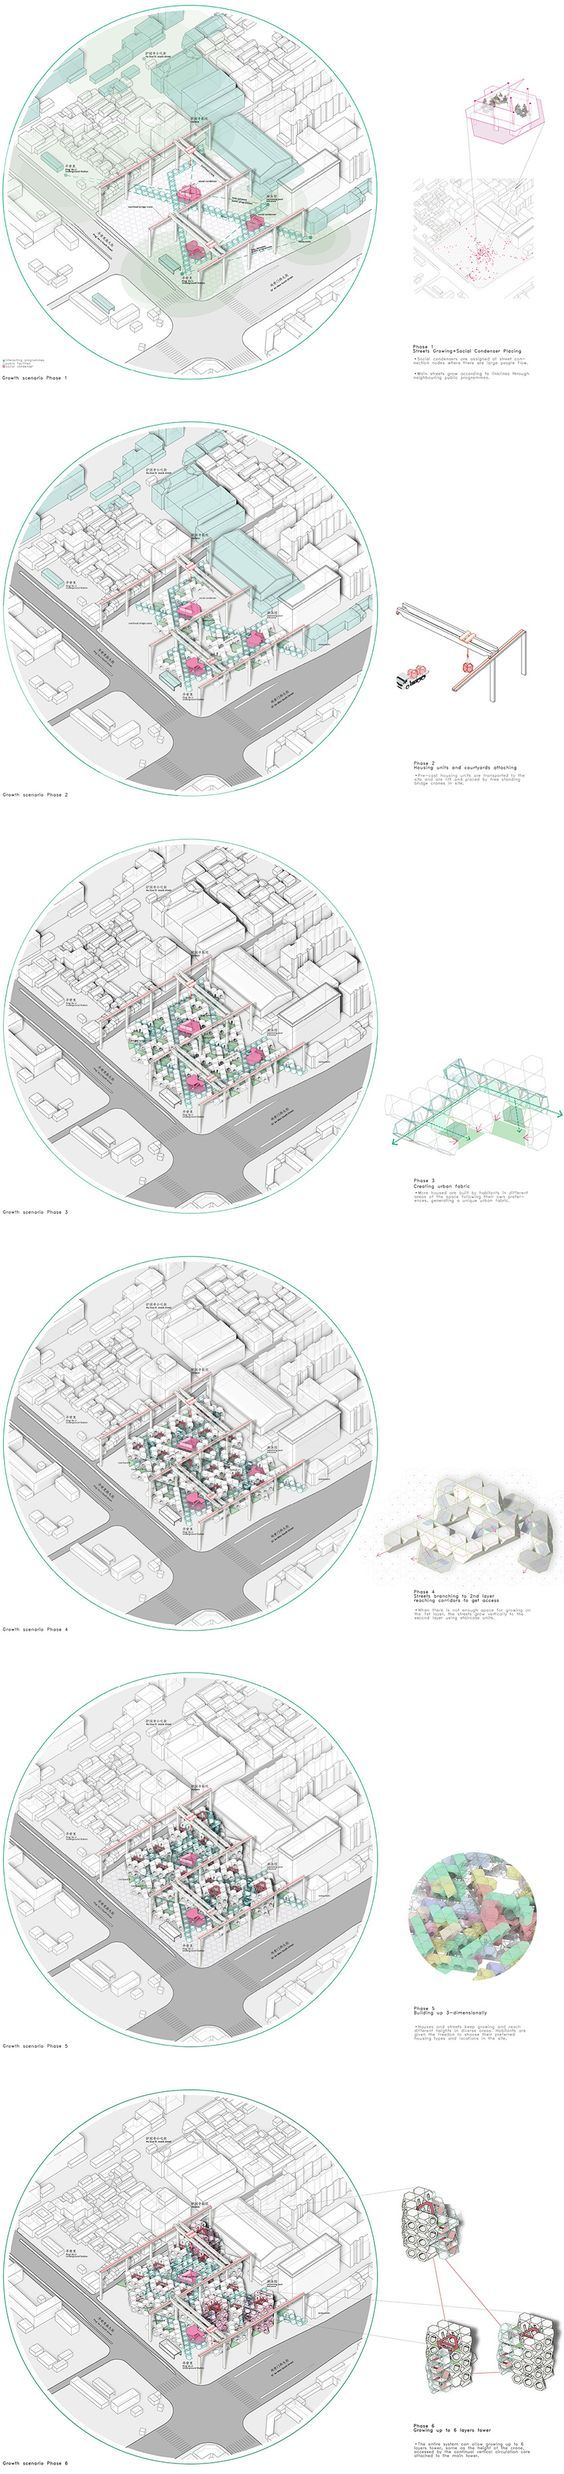 architecture diagrams _ AA School of Architecture 2013 - Intermediate 6 - Ke Wang: